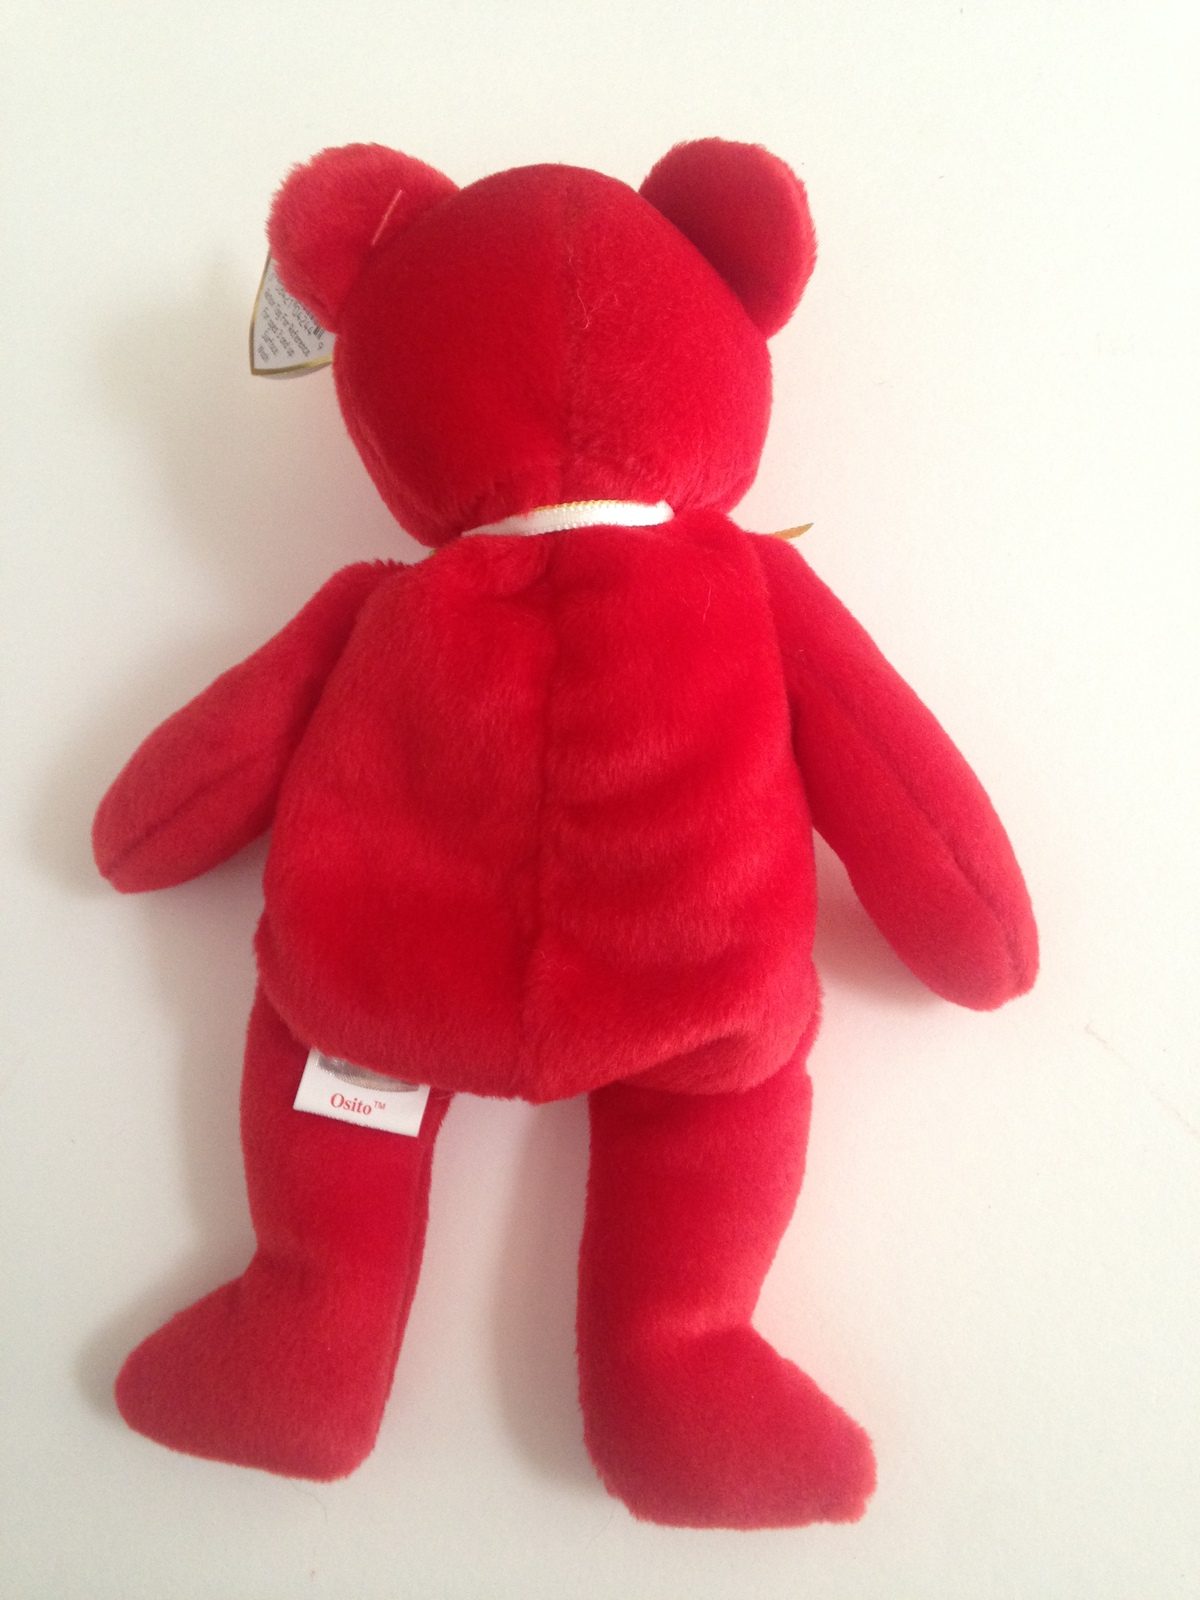 727c4b72132 Osito Beanie Baby Retired 1999 and 50 similar items